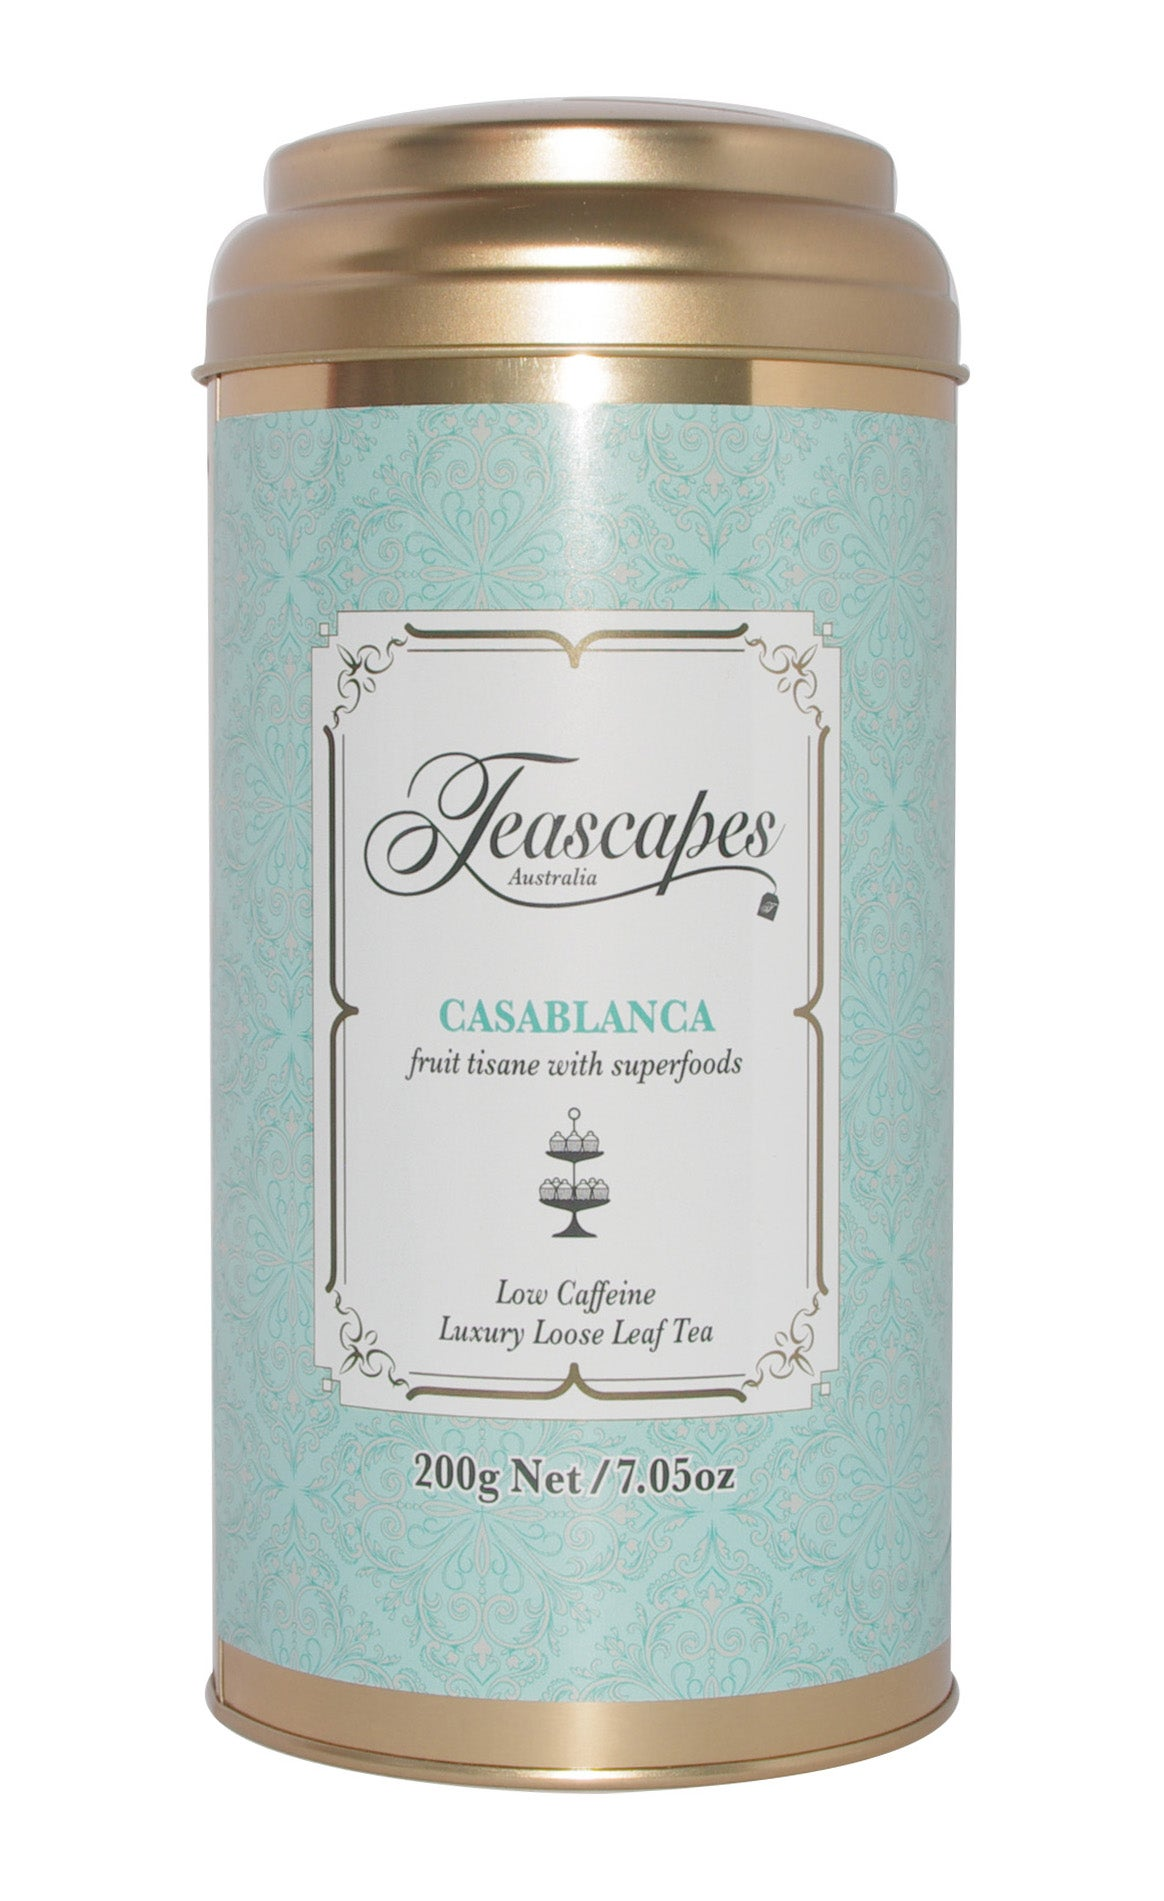 Image of Casablanca, Luxury Loose Leaf